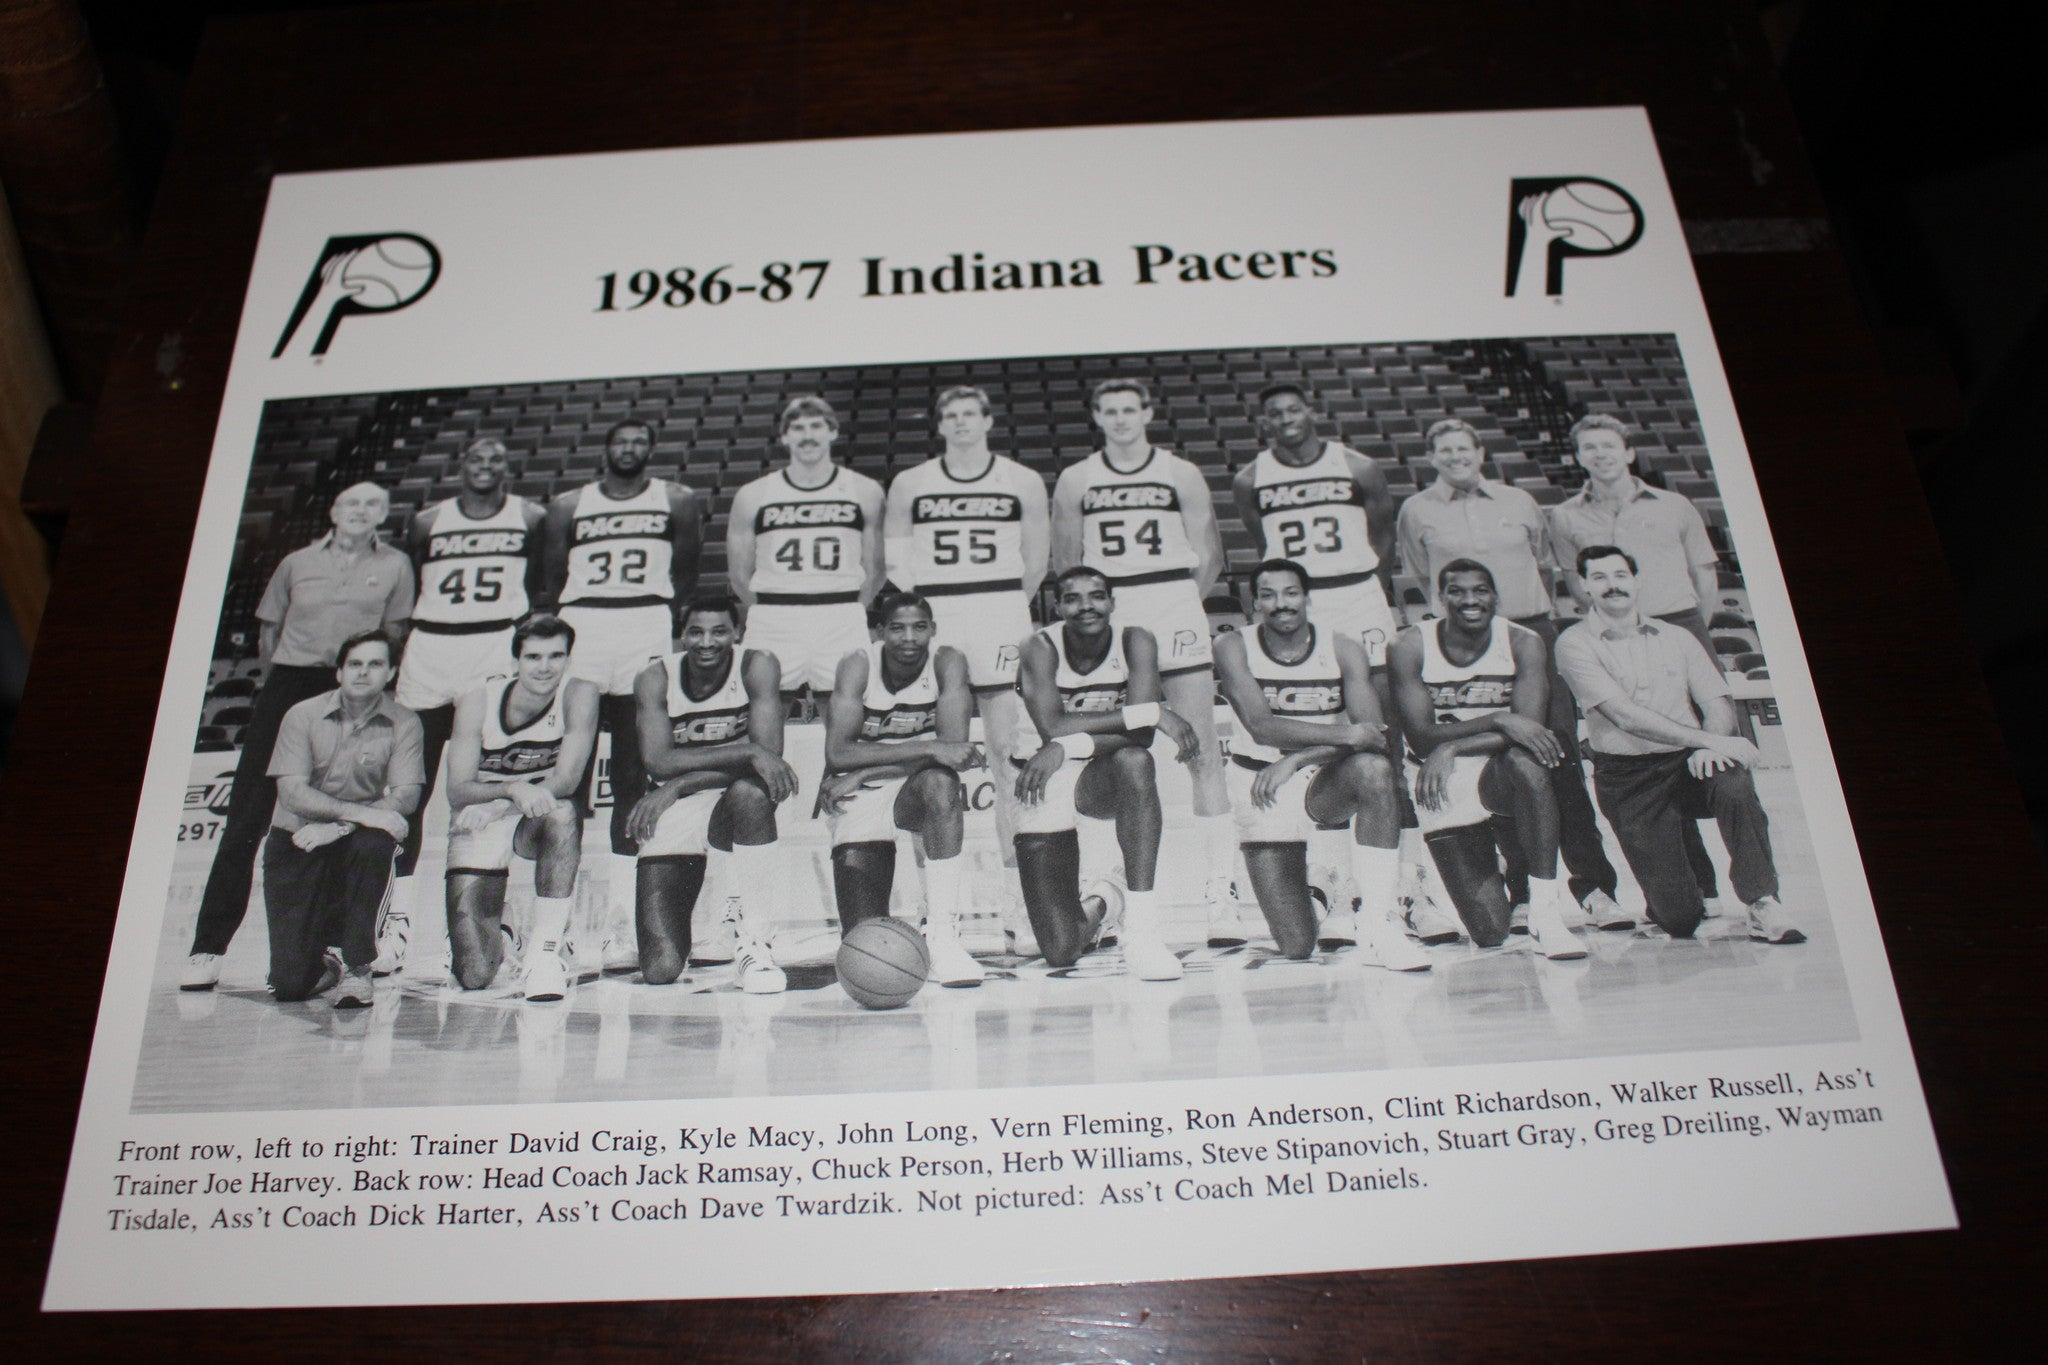 1986-87 Indiana Pacers Team Photo - Vintage Indy Sports